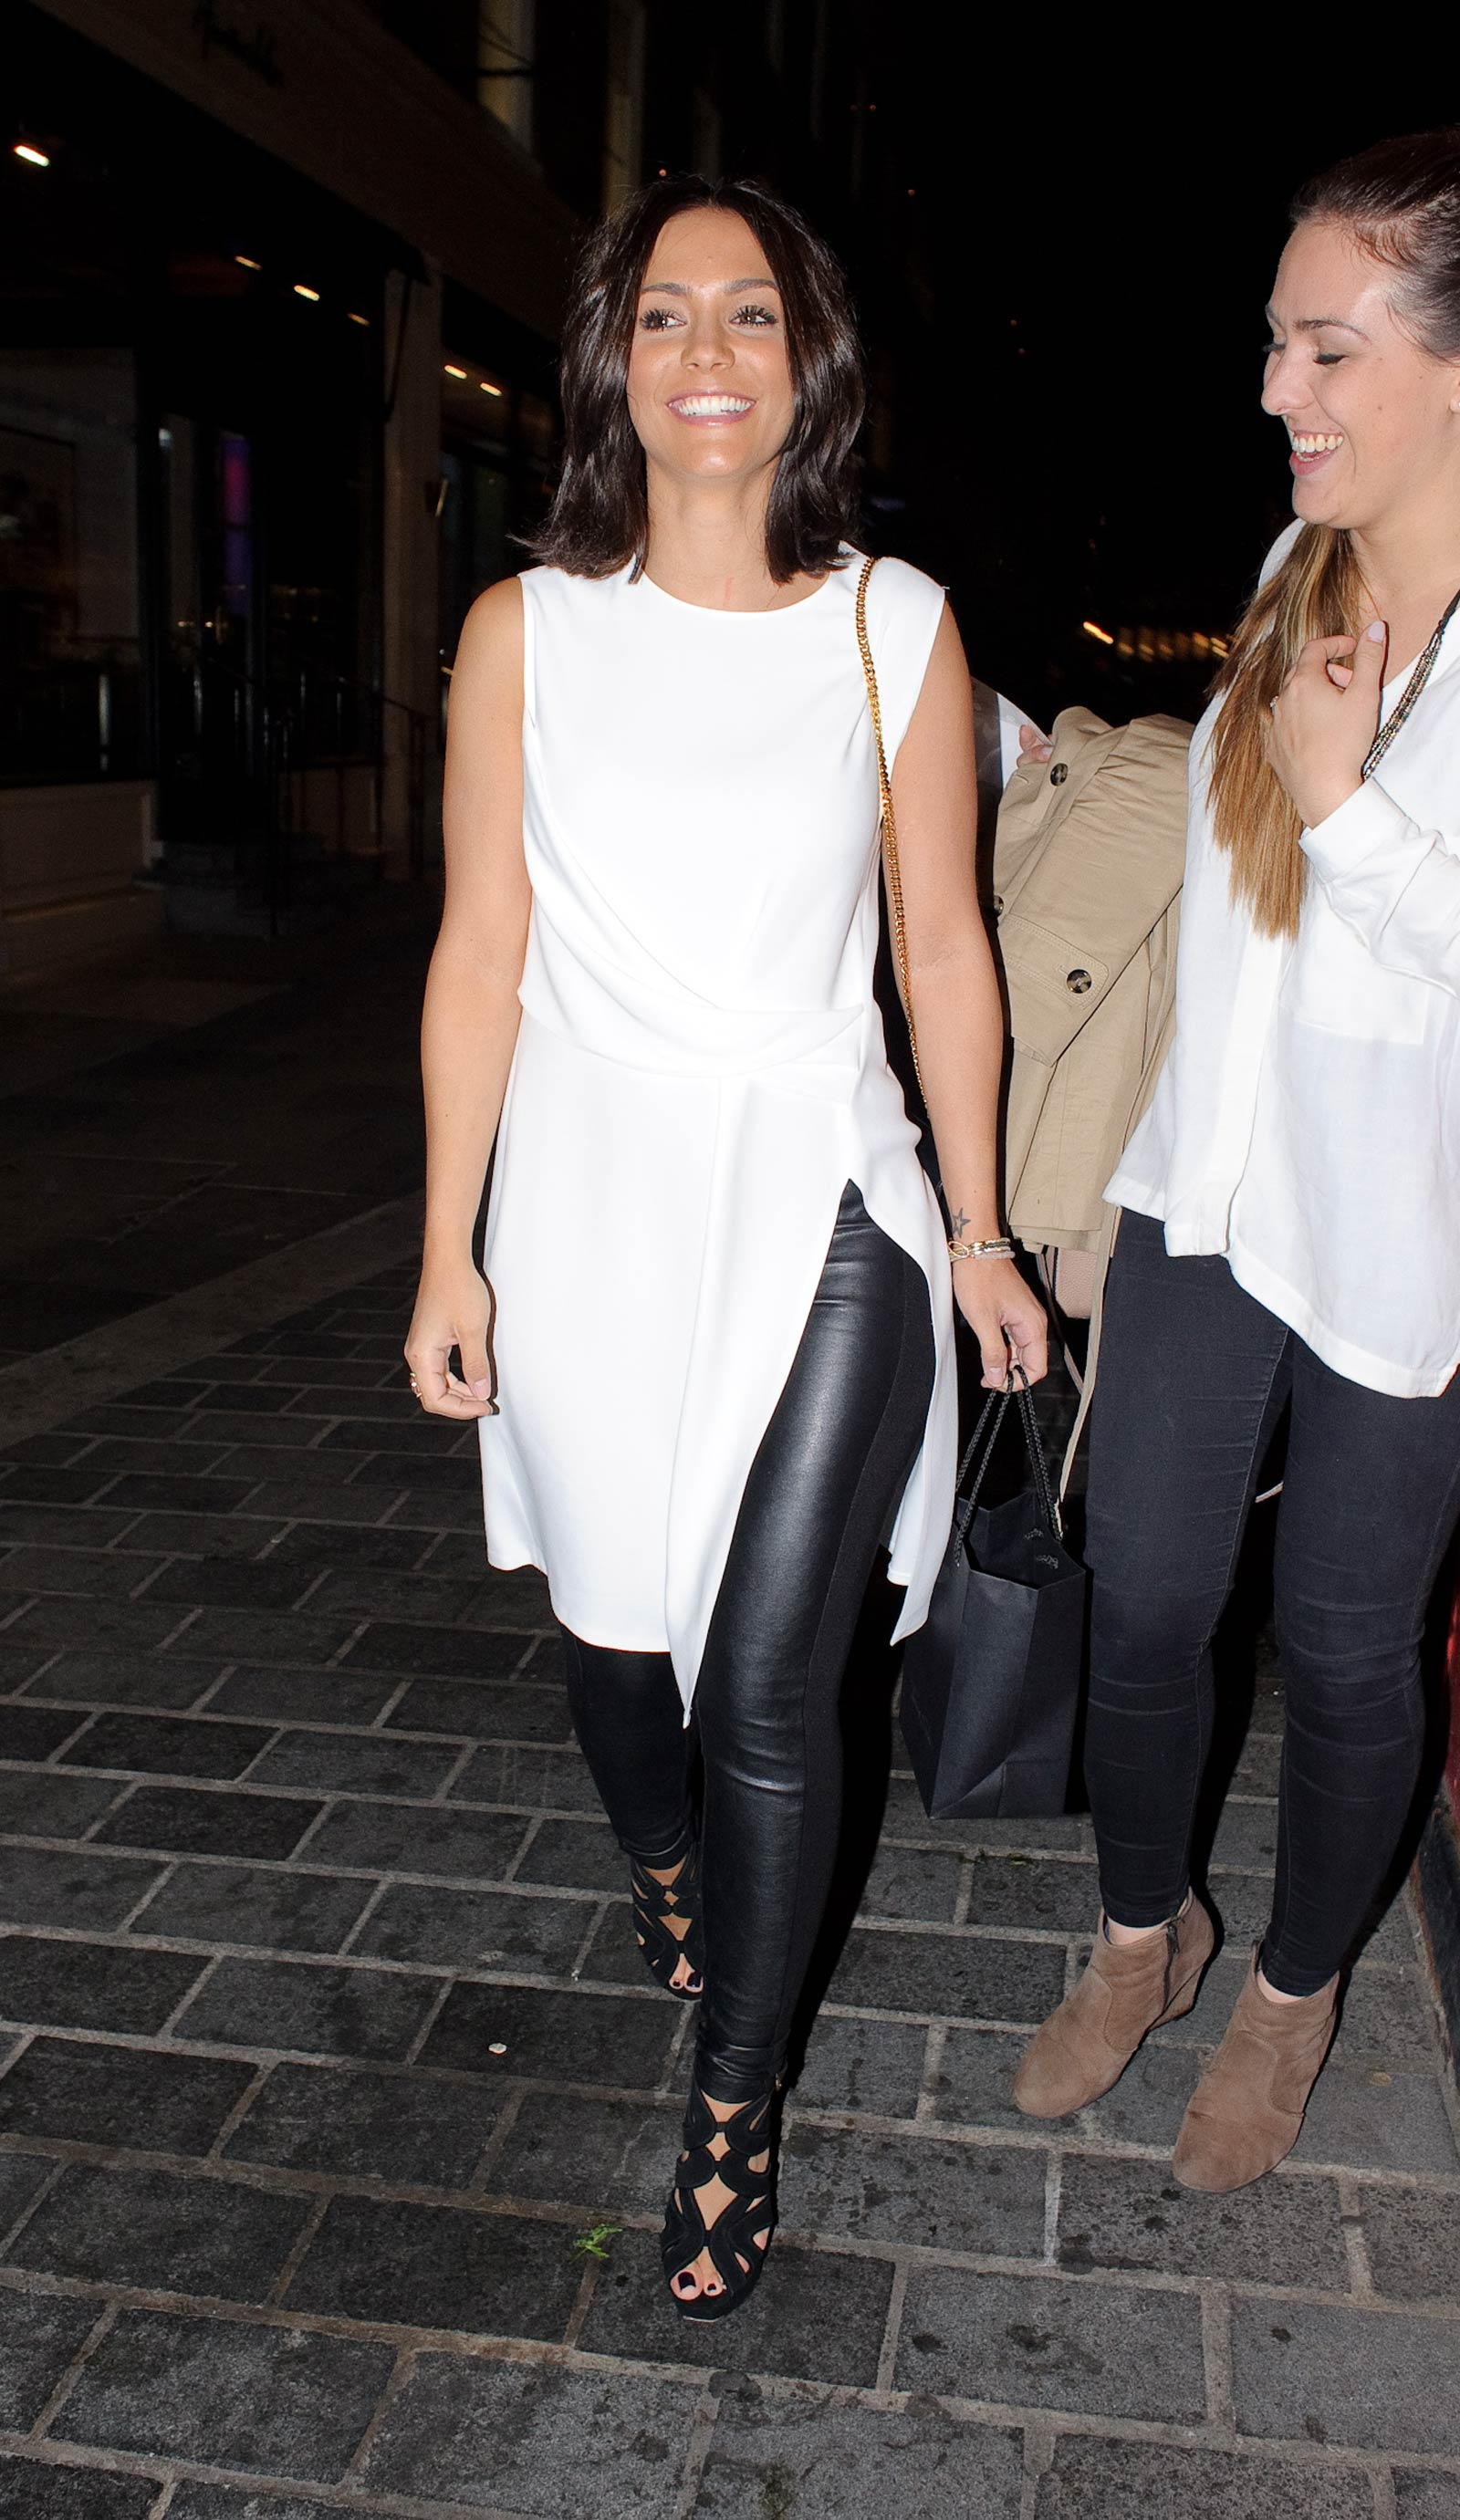 Frankie Bridge attends the Thomas Sabo & Professional Player Magazine Cocktail & Collection Launch